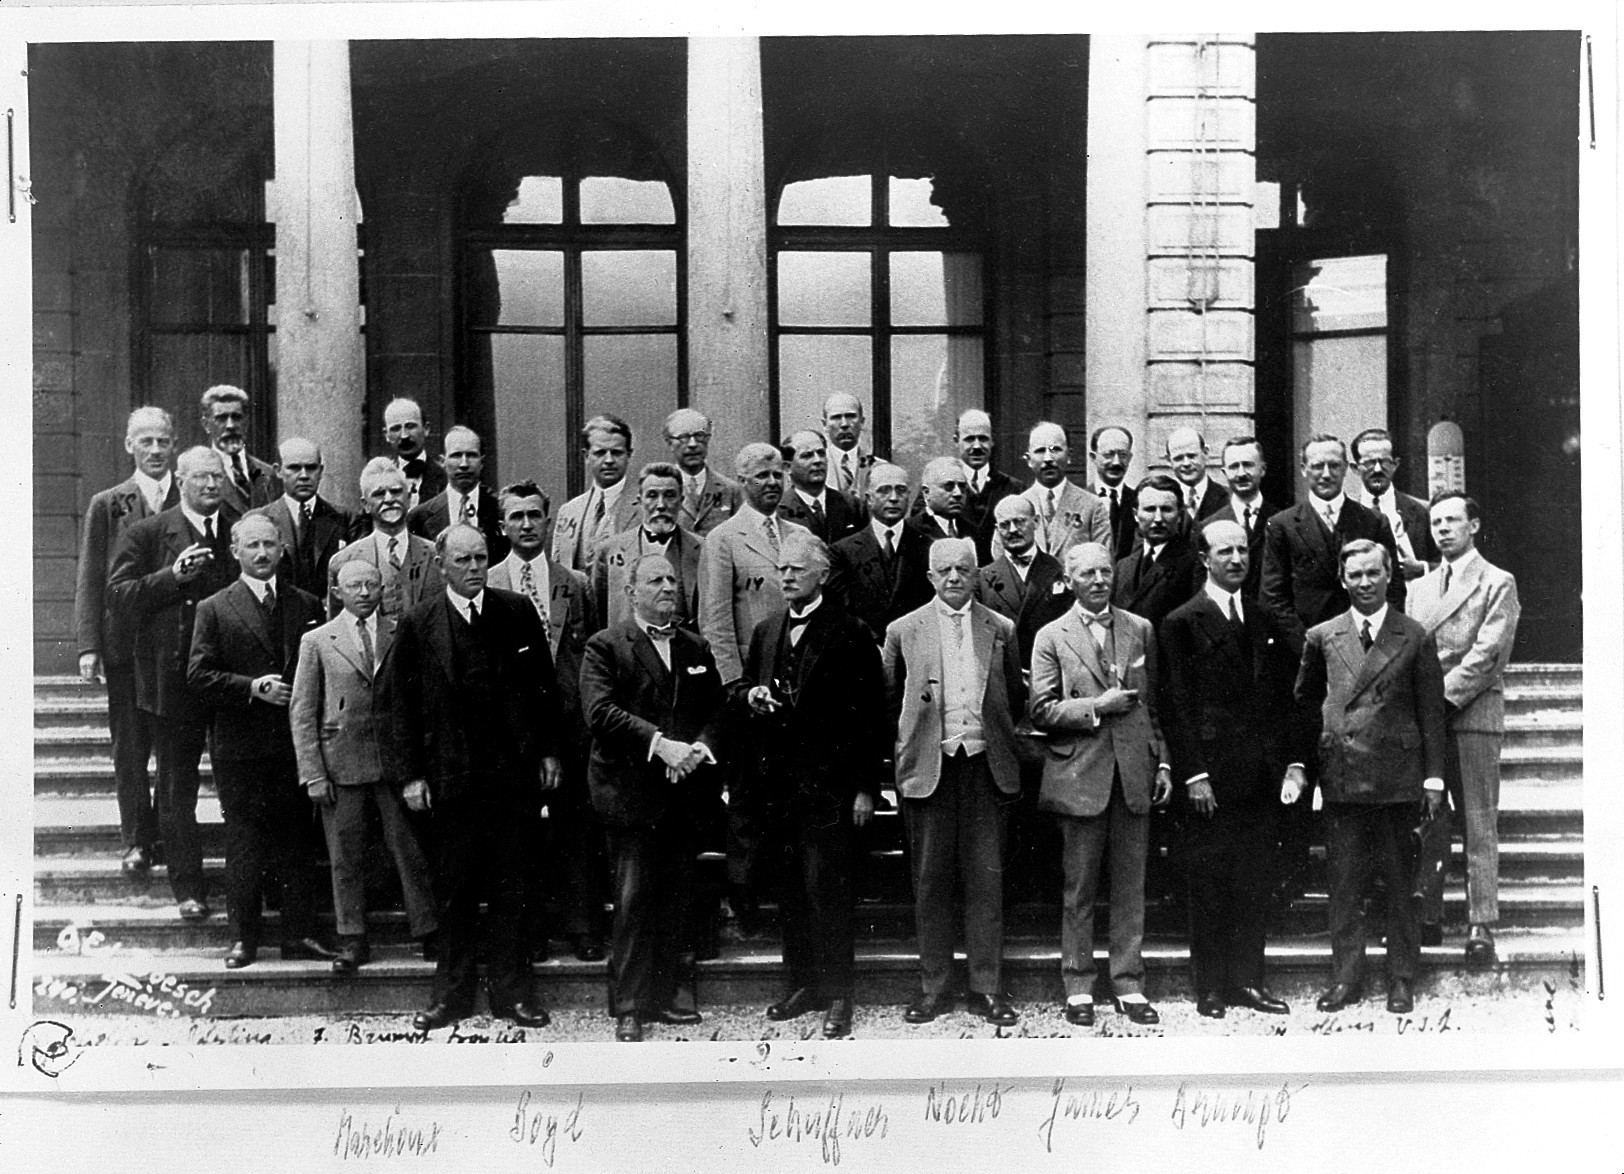 Malaria Commission of the League of Nations, Geneva. Photograph by Poesch photographic agency, 1928